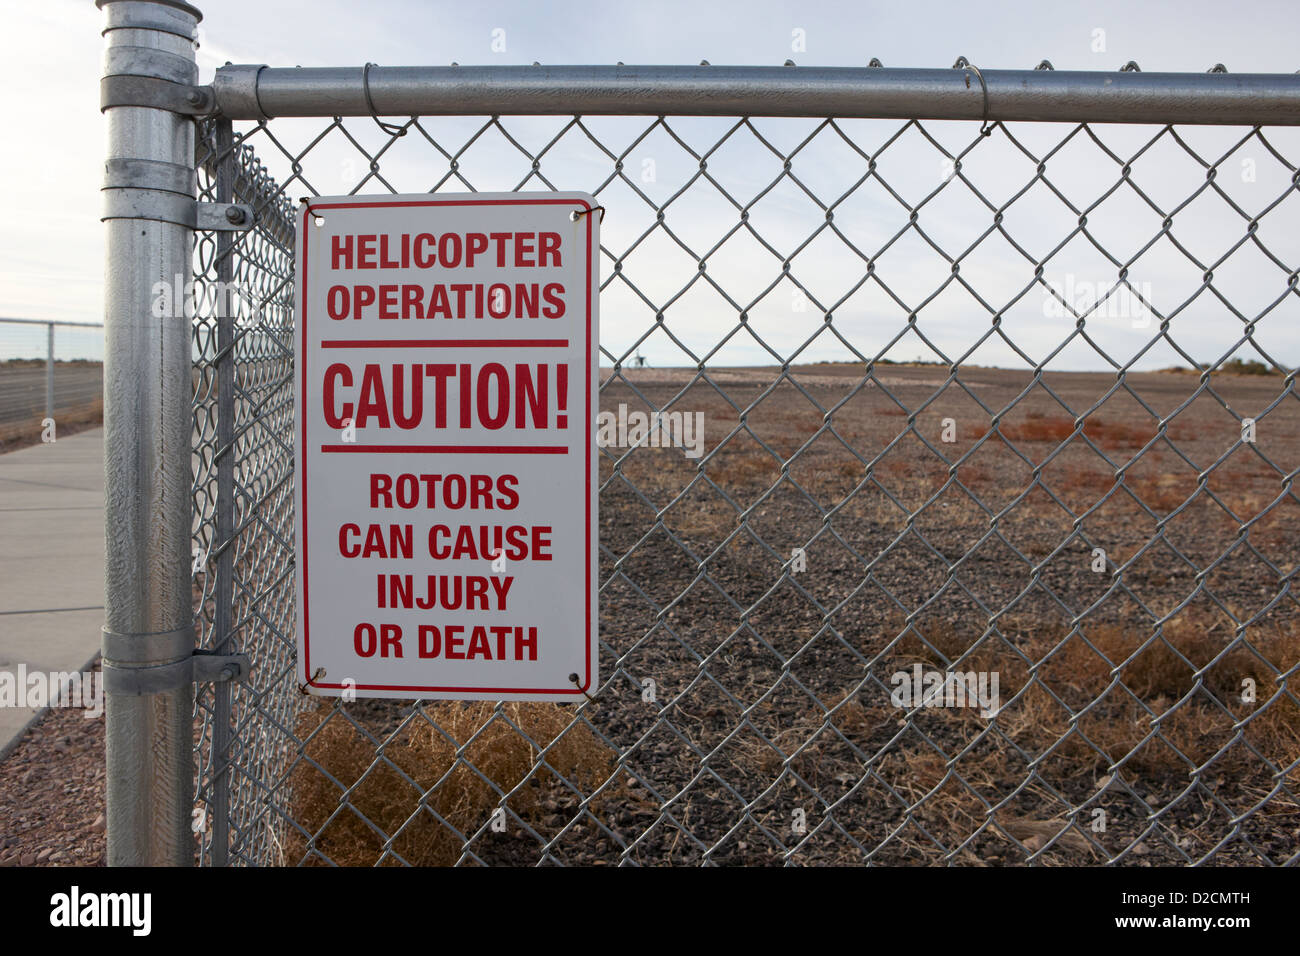 Helicopter Operation Safety Signs At Grand Canyon West Airport Stock Photo R